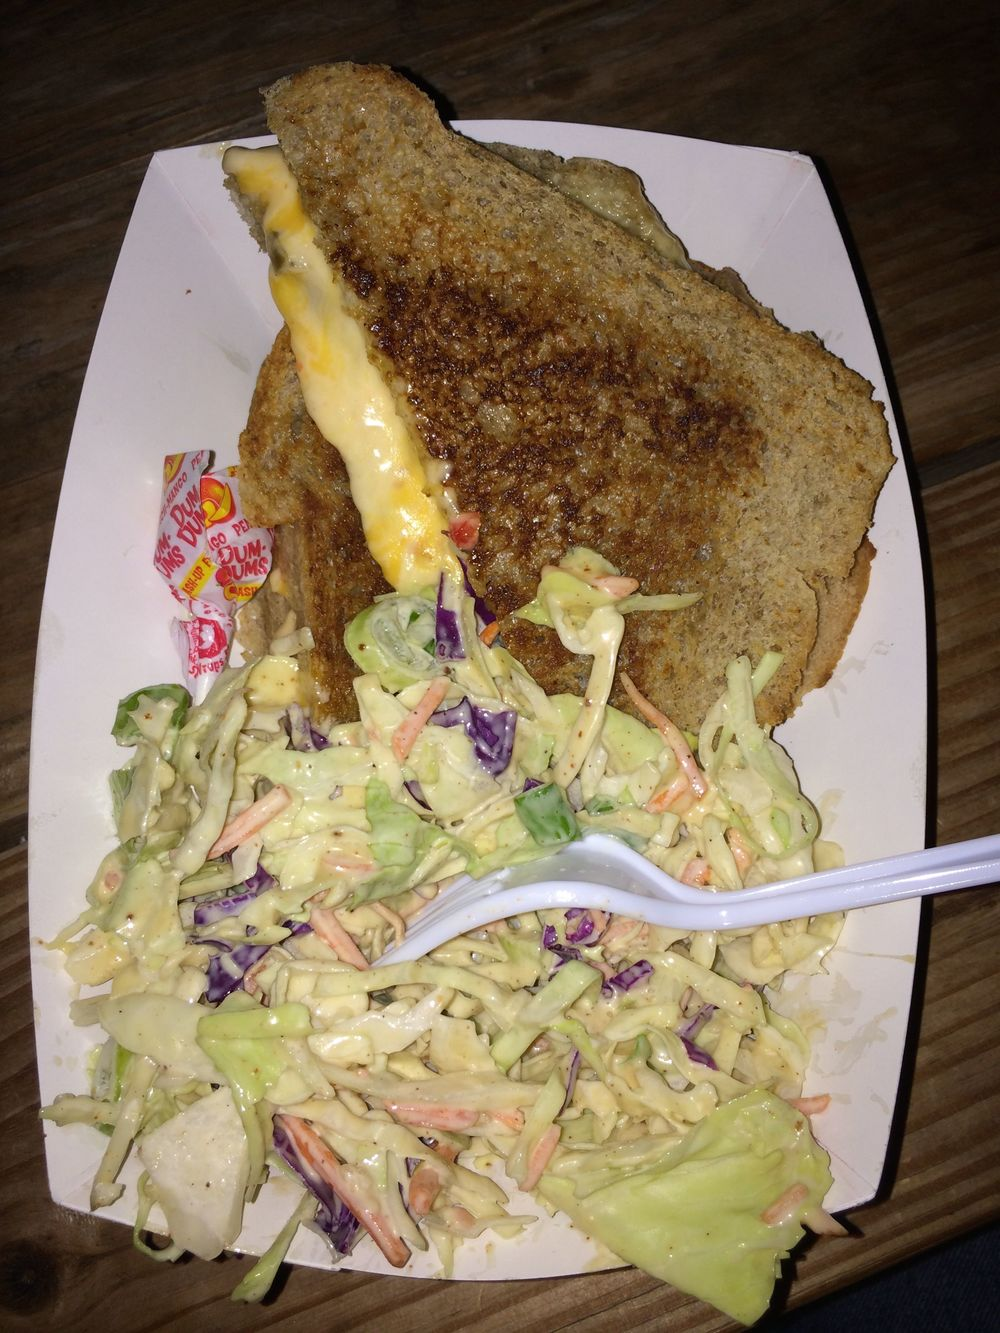 Grilled Smoked Gouda & Pimento Cheese Sandwich from Melt Your Heart